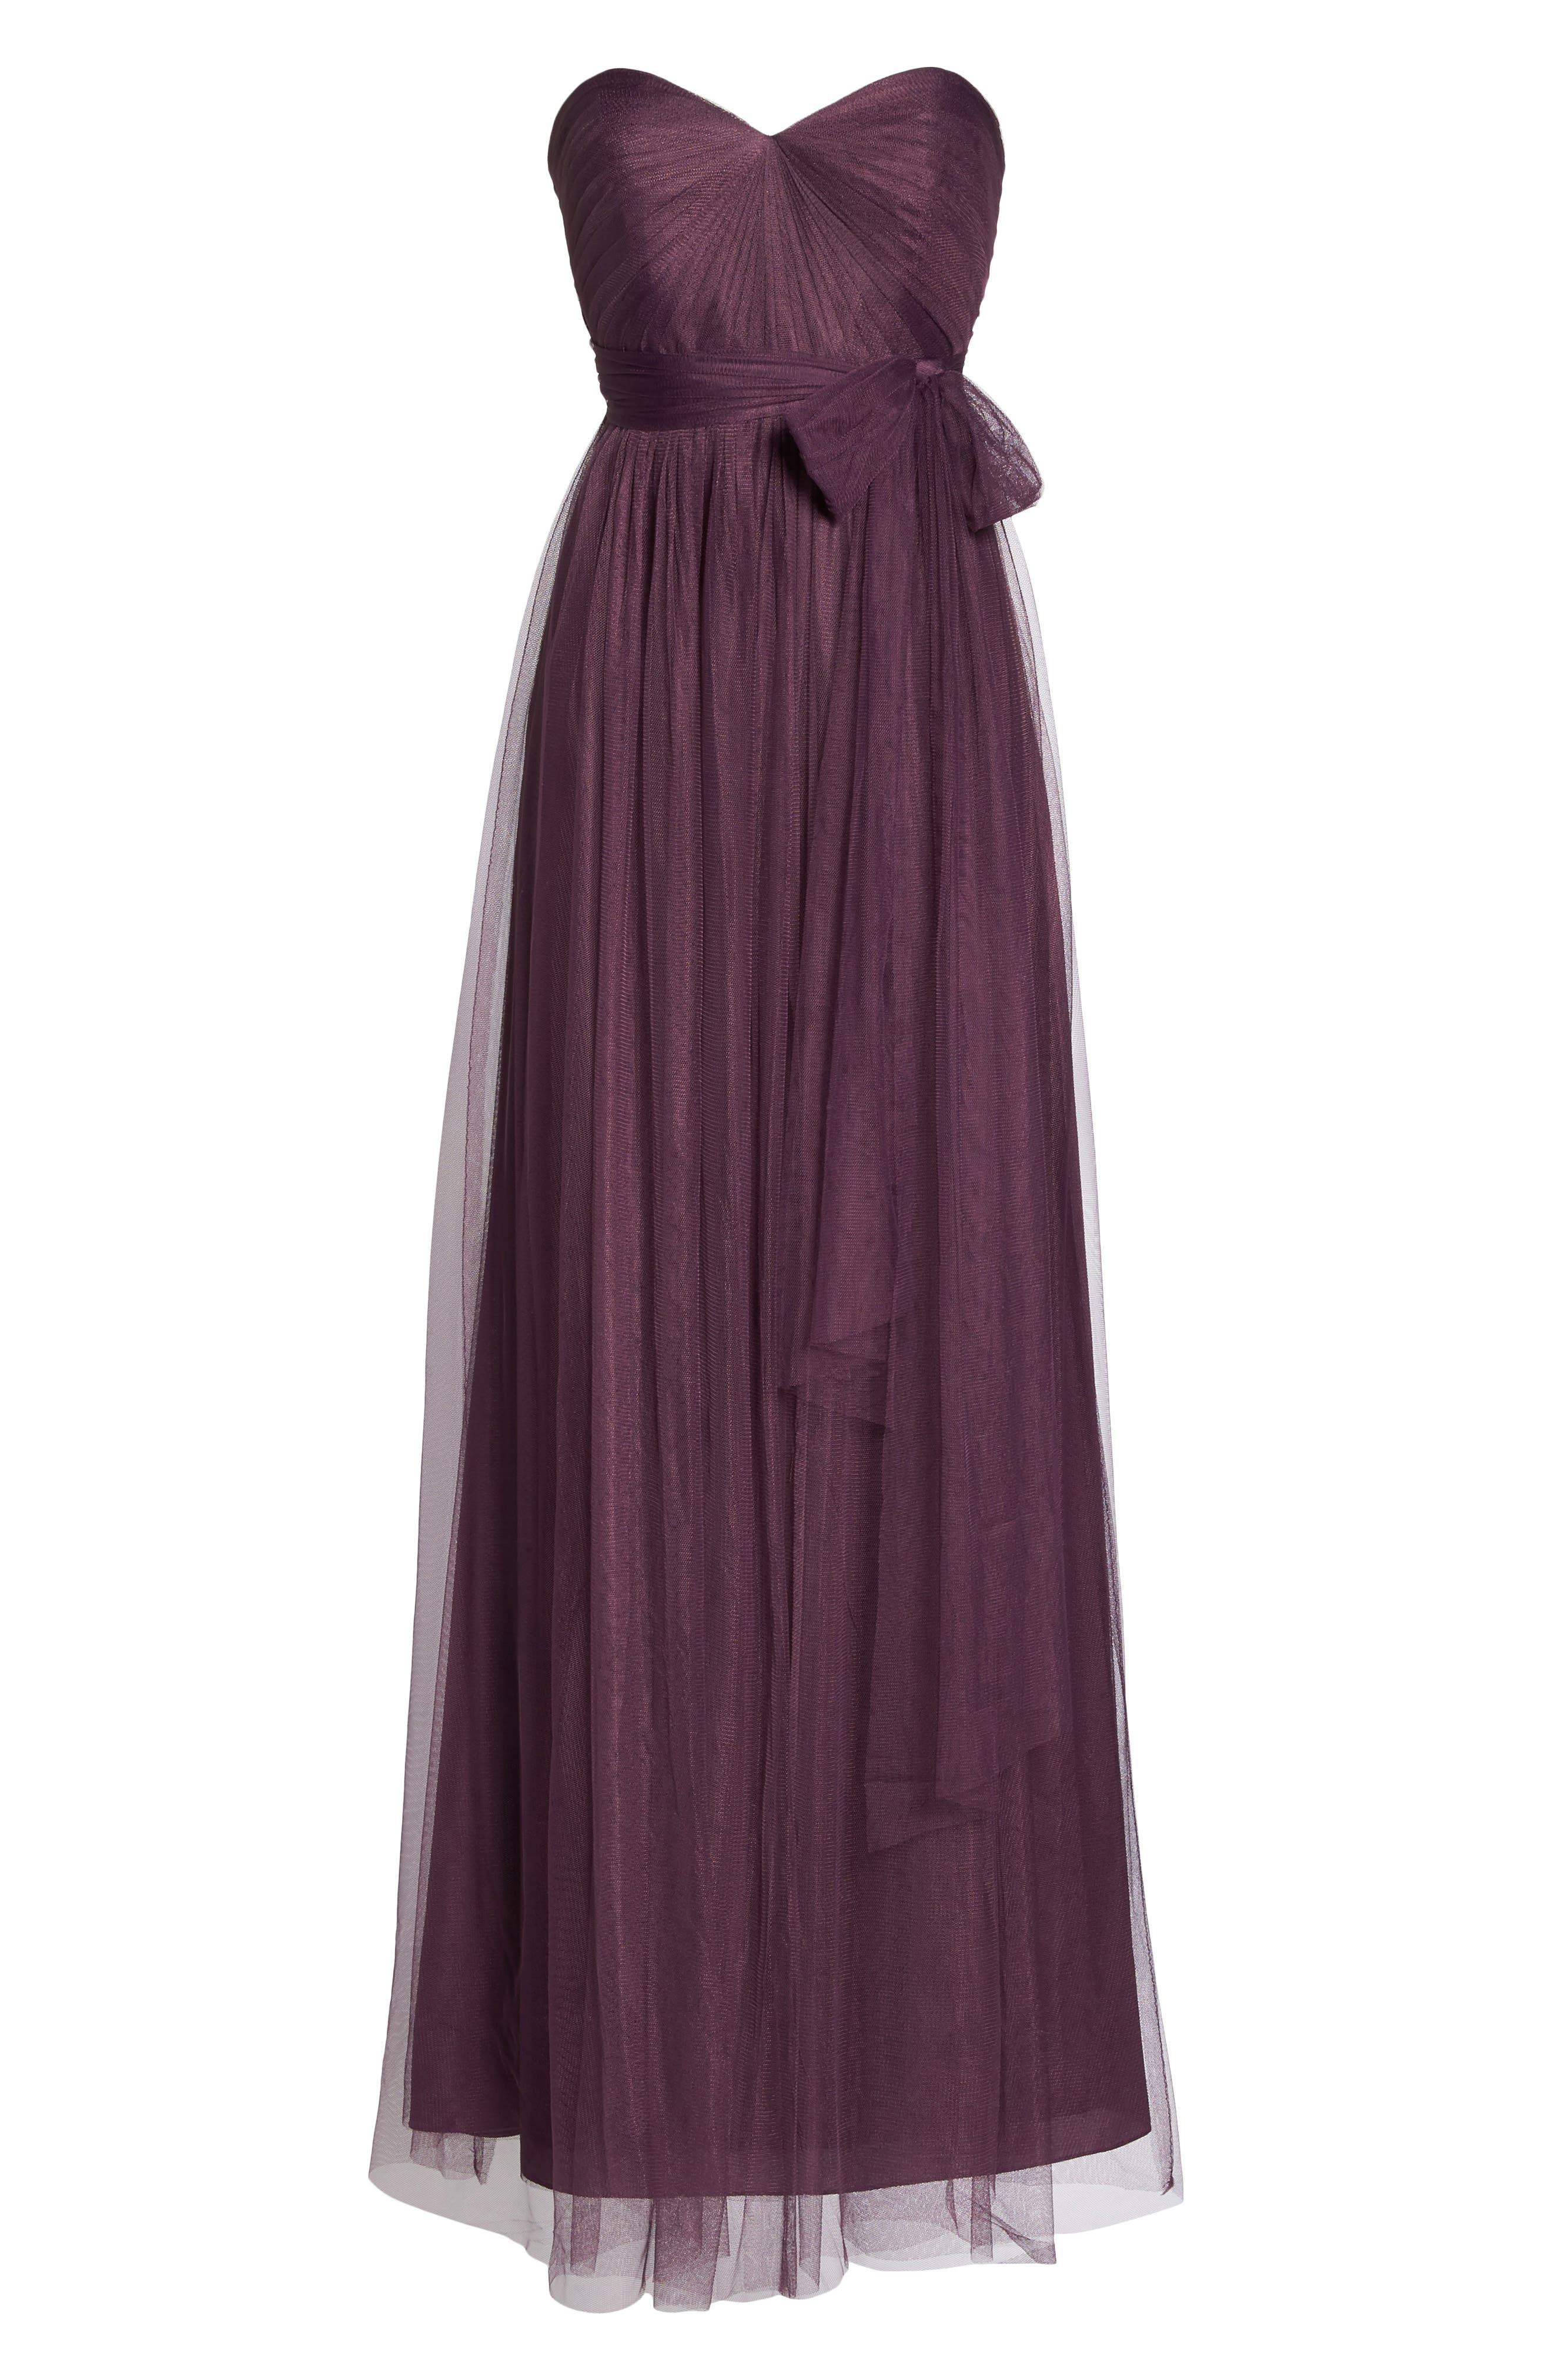 Annabelle Convertible Tulle Column Dress,                             Alternate thumbnail 166, color,